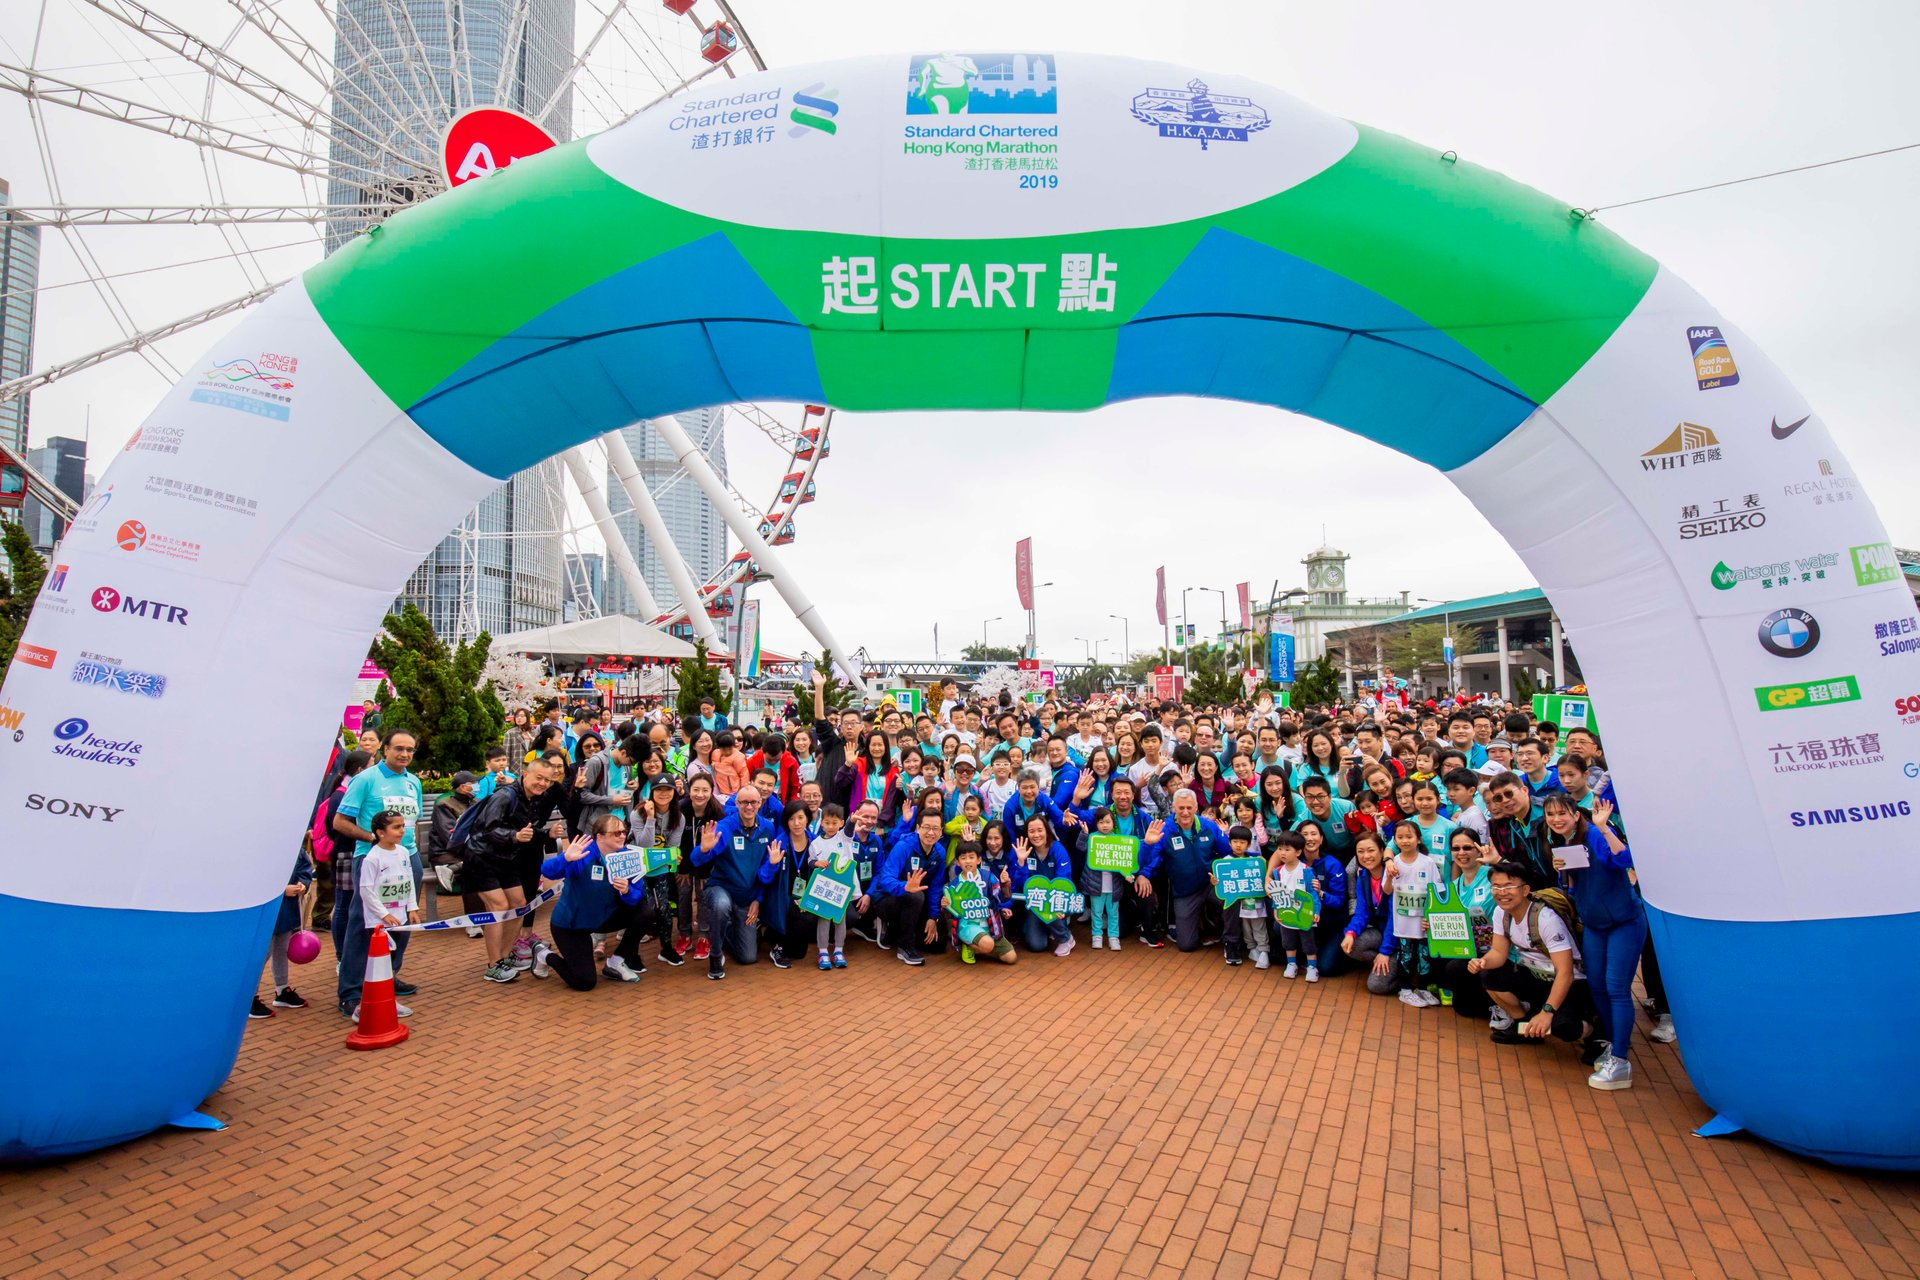 Standard Chartered Hong Kong Marathon in Hong Kong - Best Season 2020